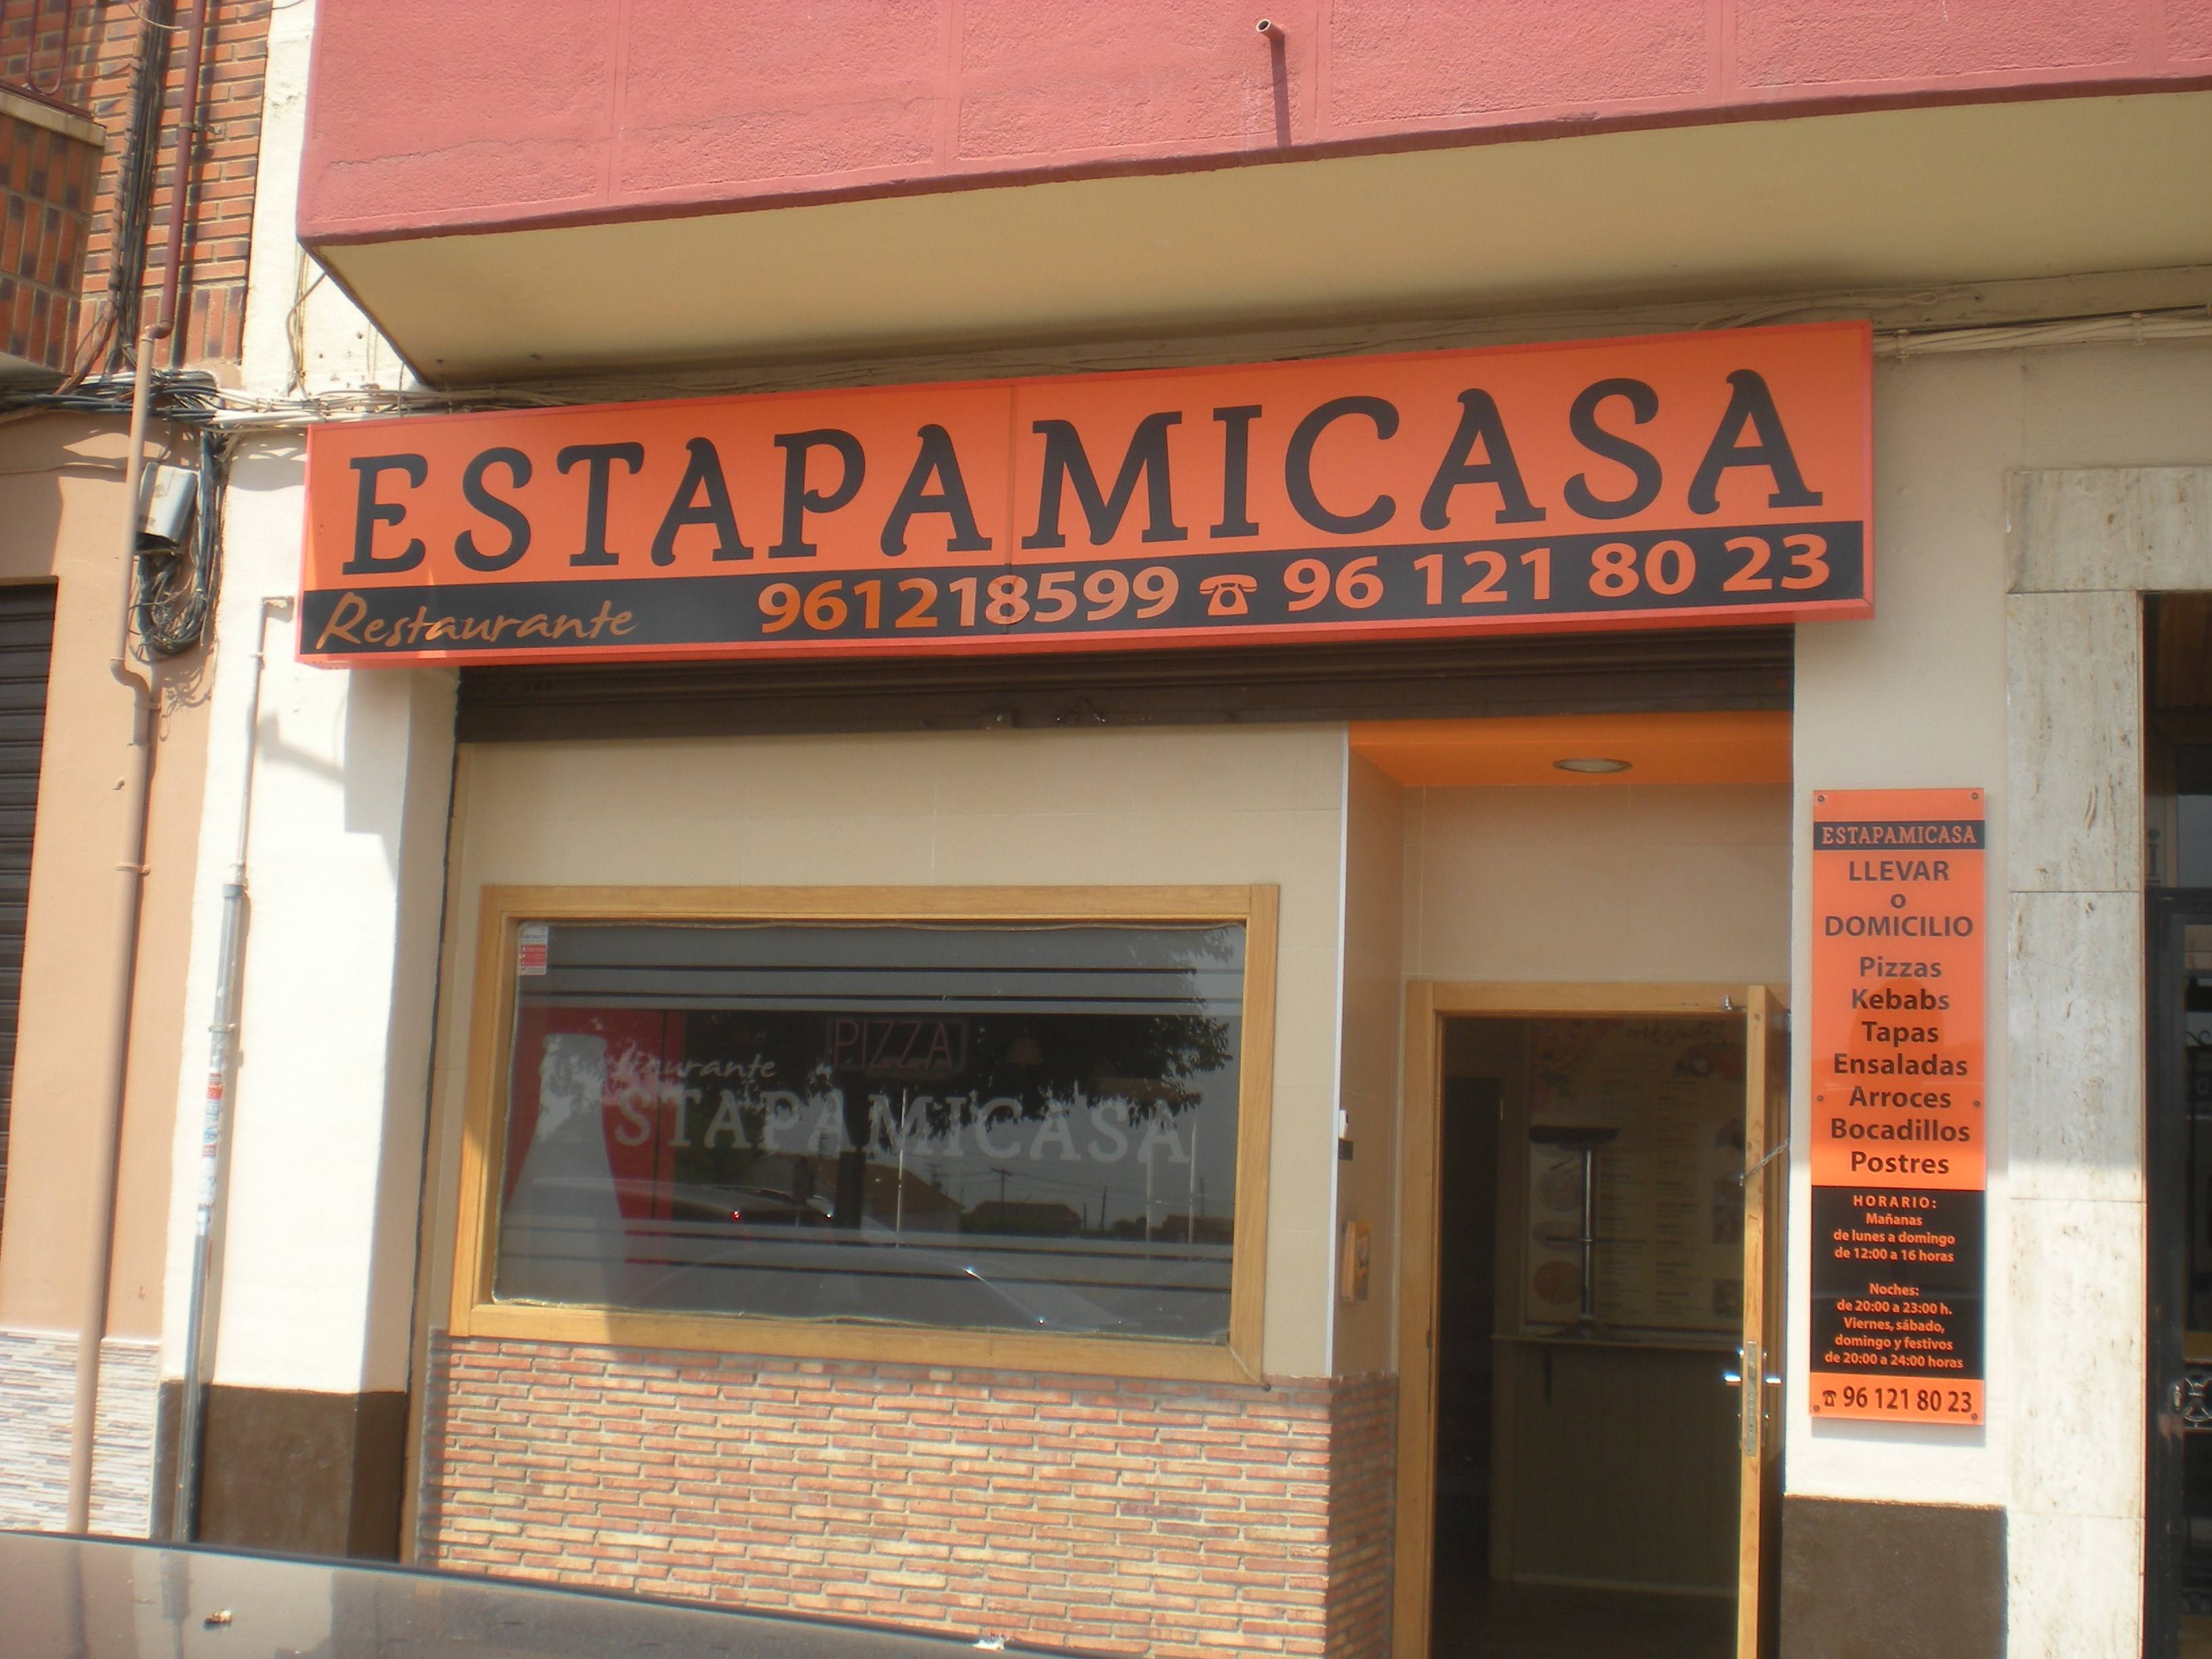 RESTAURANTE ESTAPAMICASA